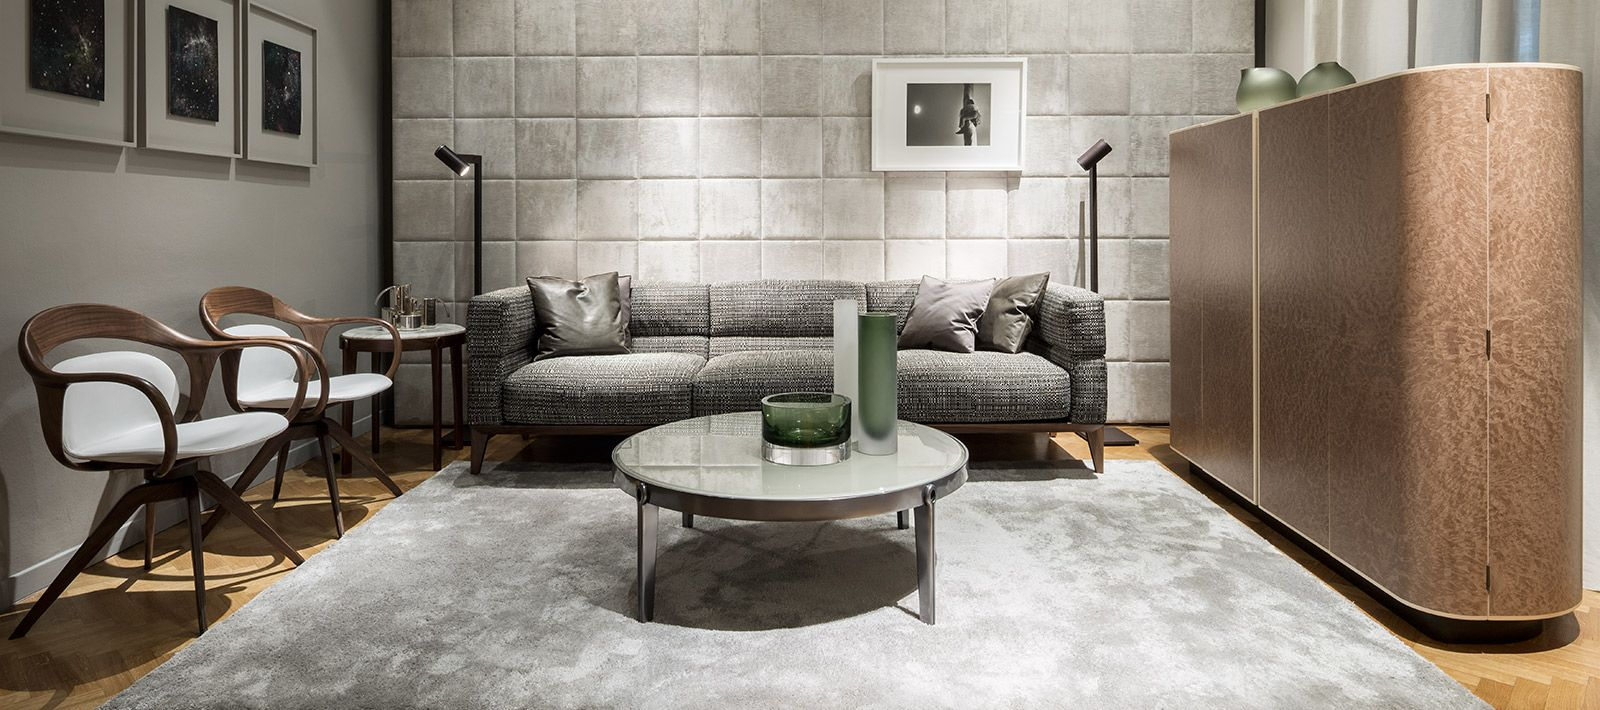 giorgetti ago sofa coffee table u0026 side table norah armchairs moore cabinet